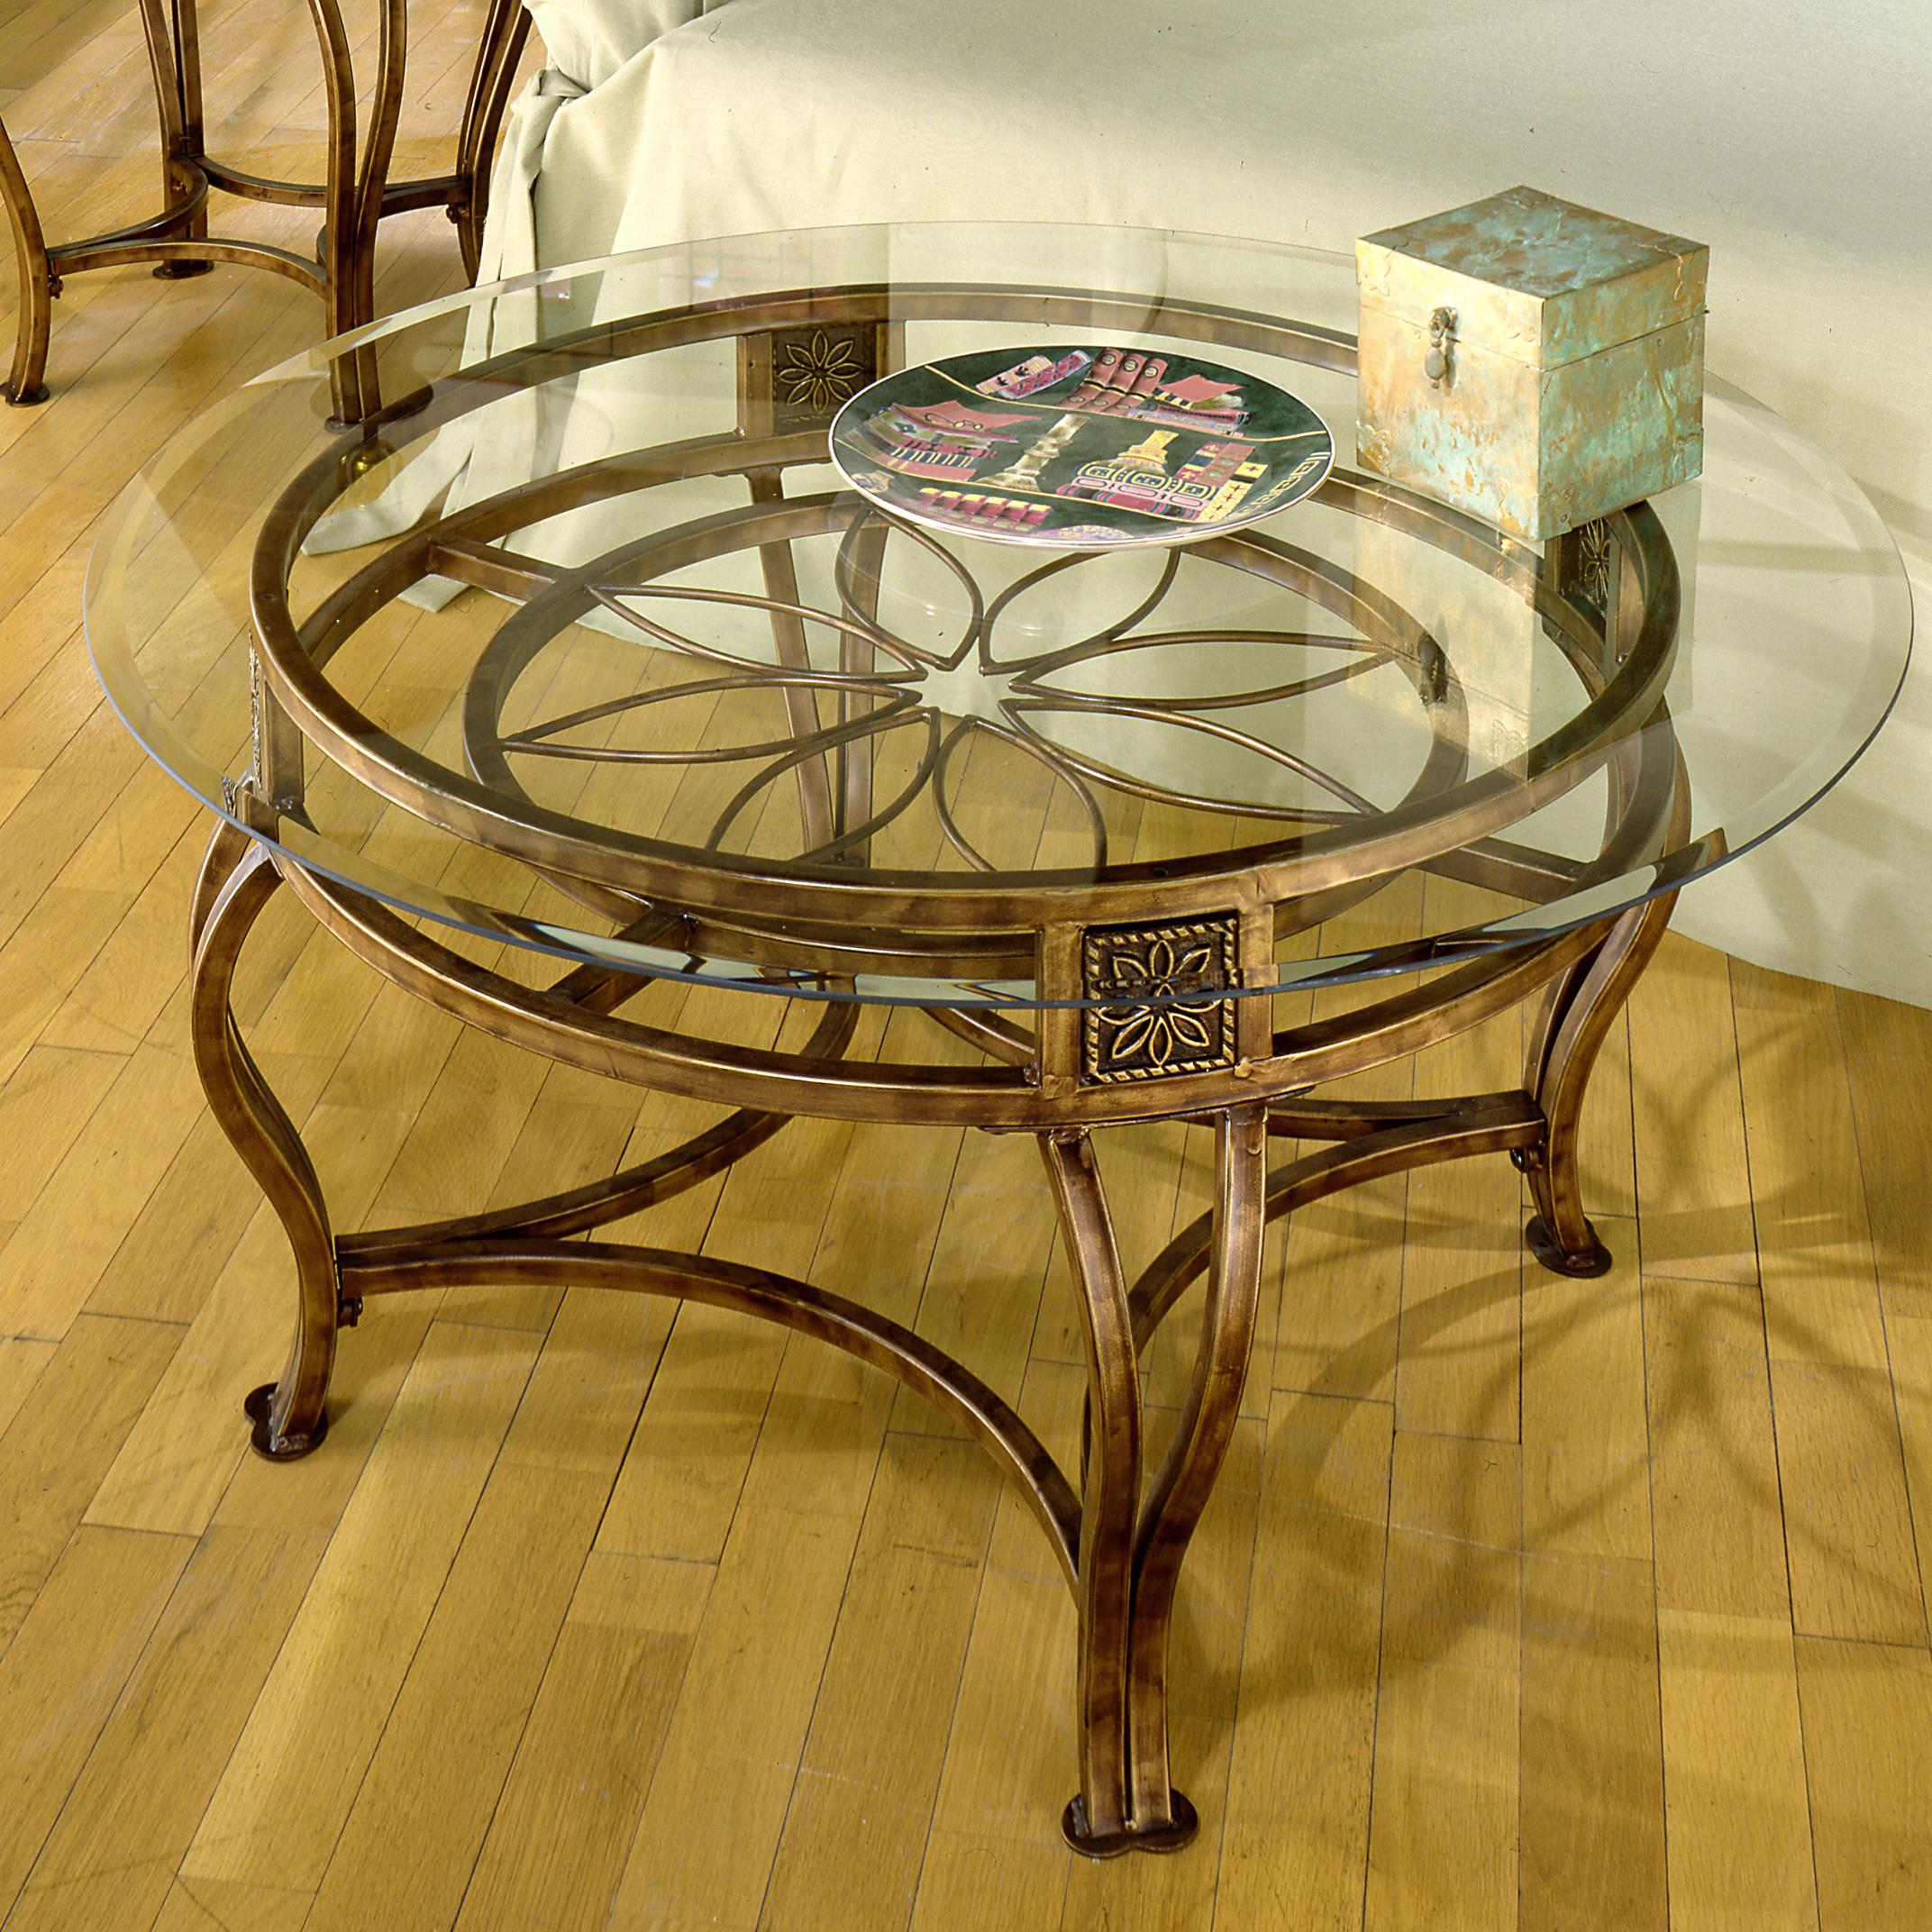 Hillsdale Occasional Tables Scottsdale Cocktail Table - Item Number: 40386OTC